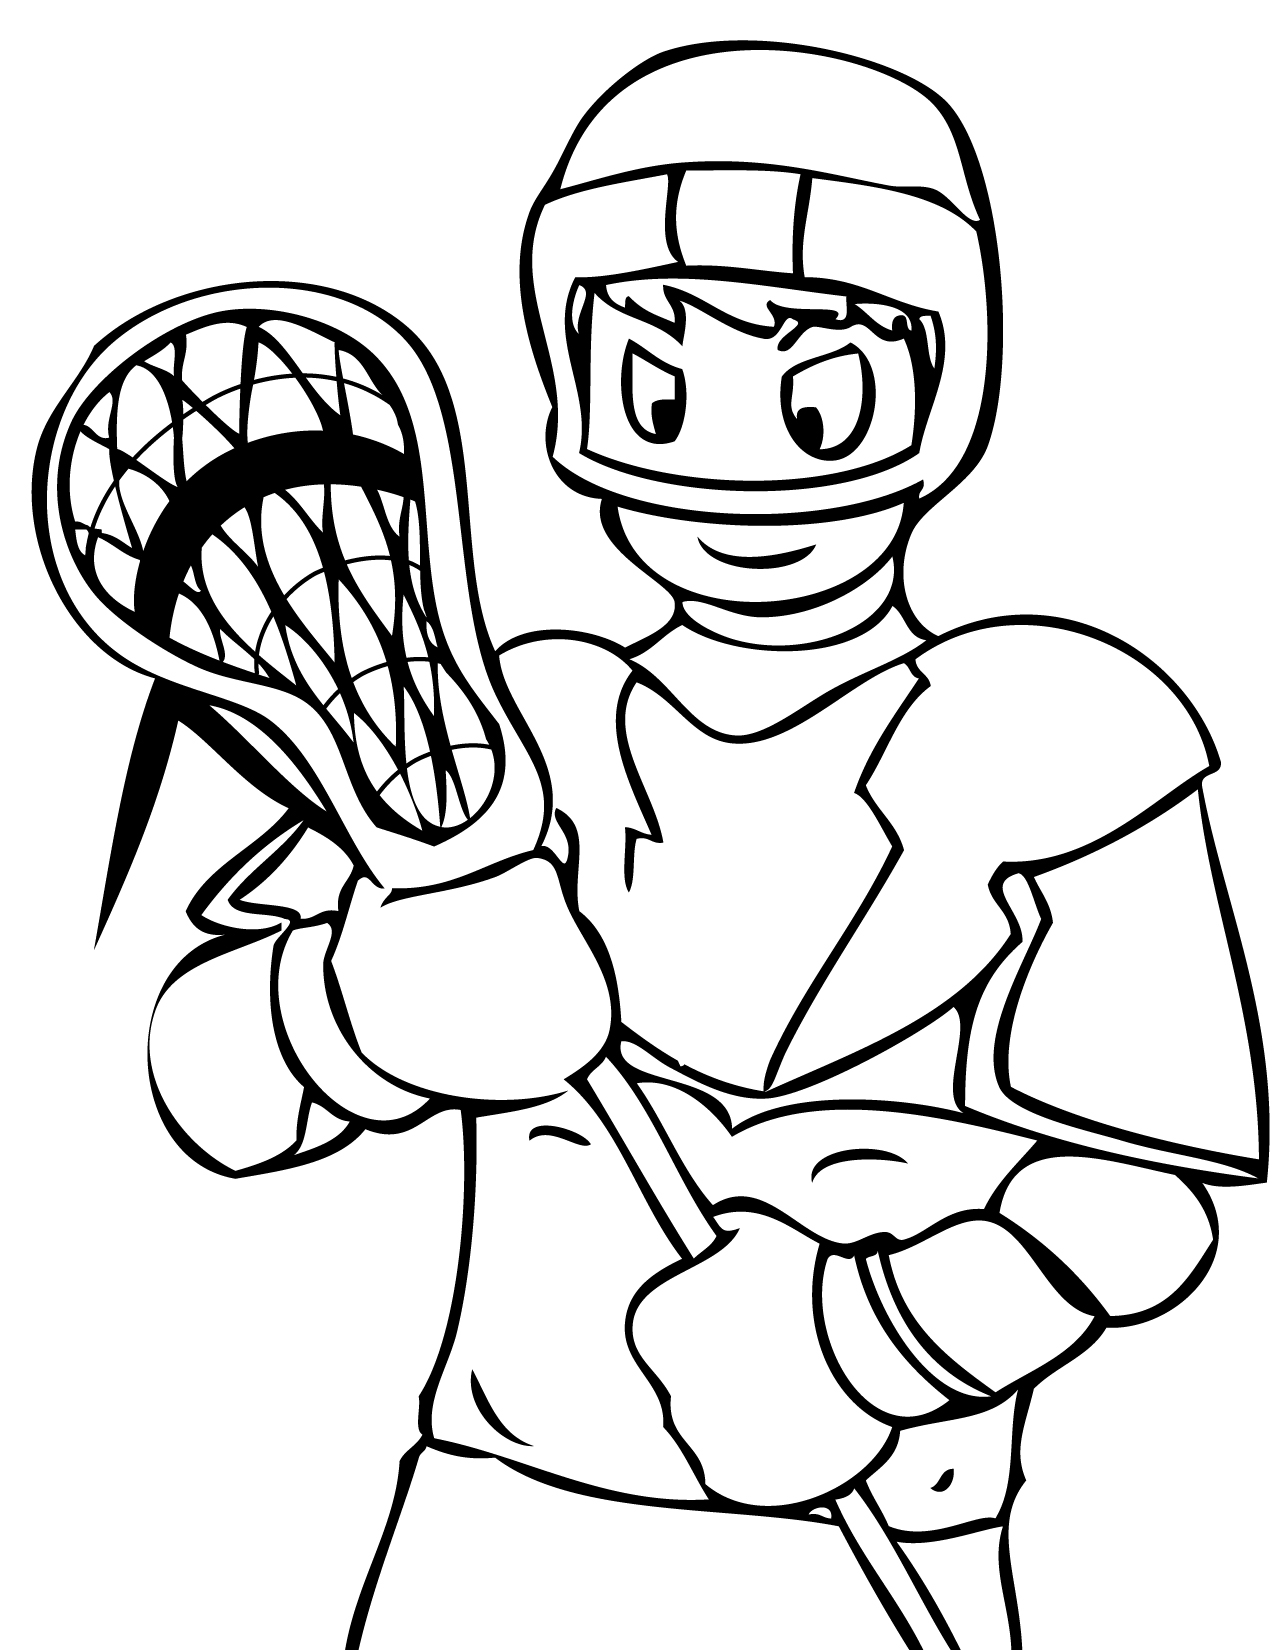 sport coloring pages 121 sports coloring sheets customize and print pdf coloring sport pages